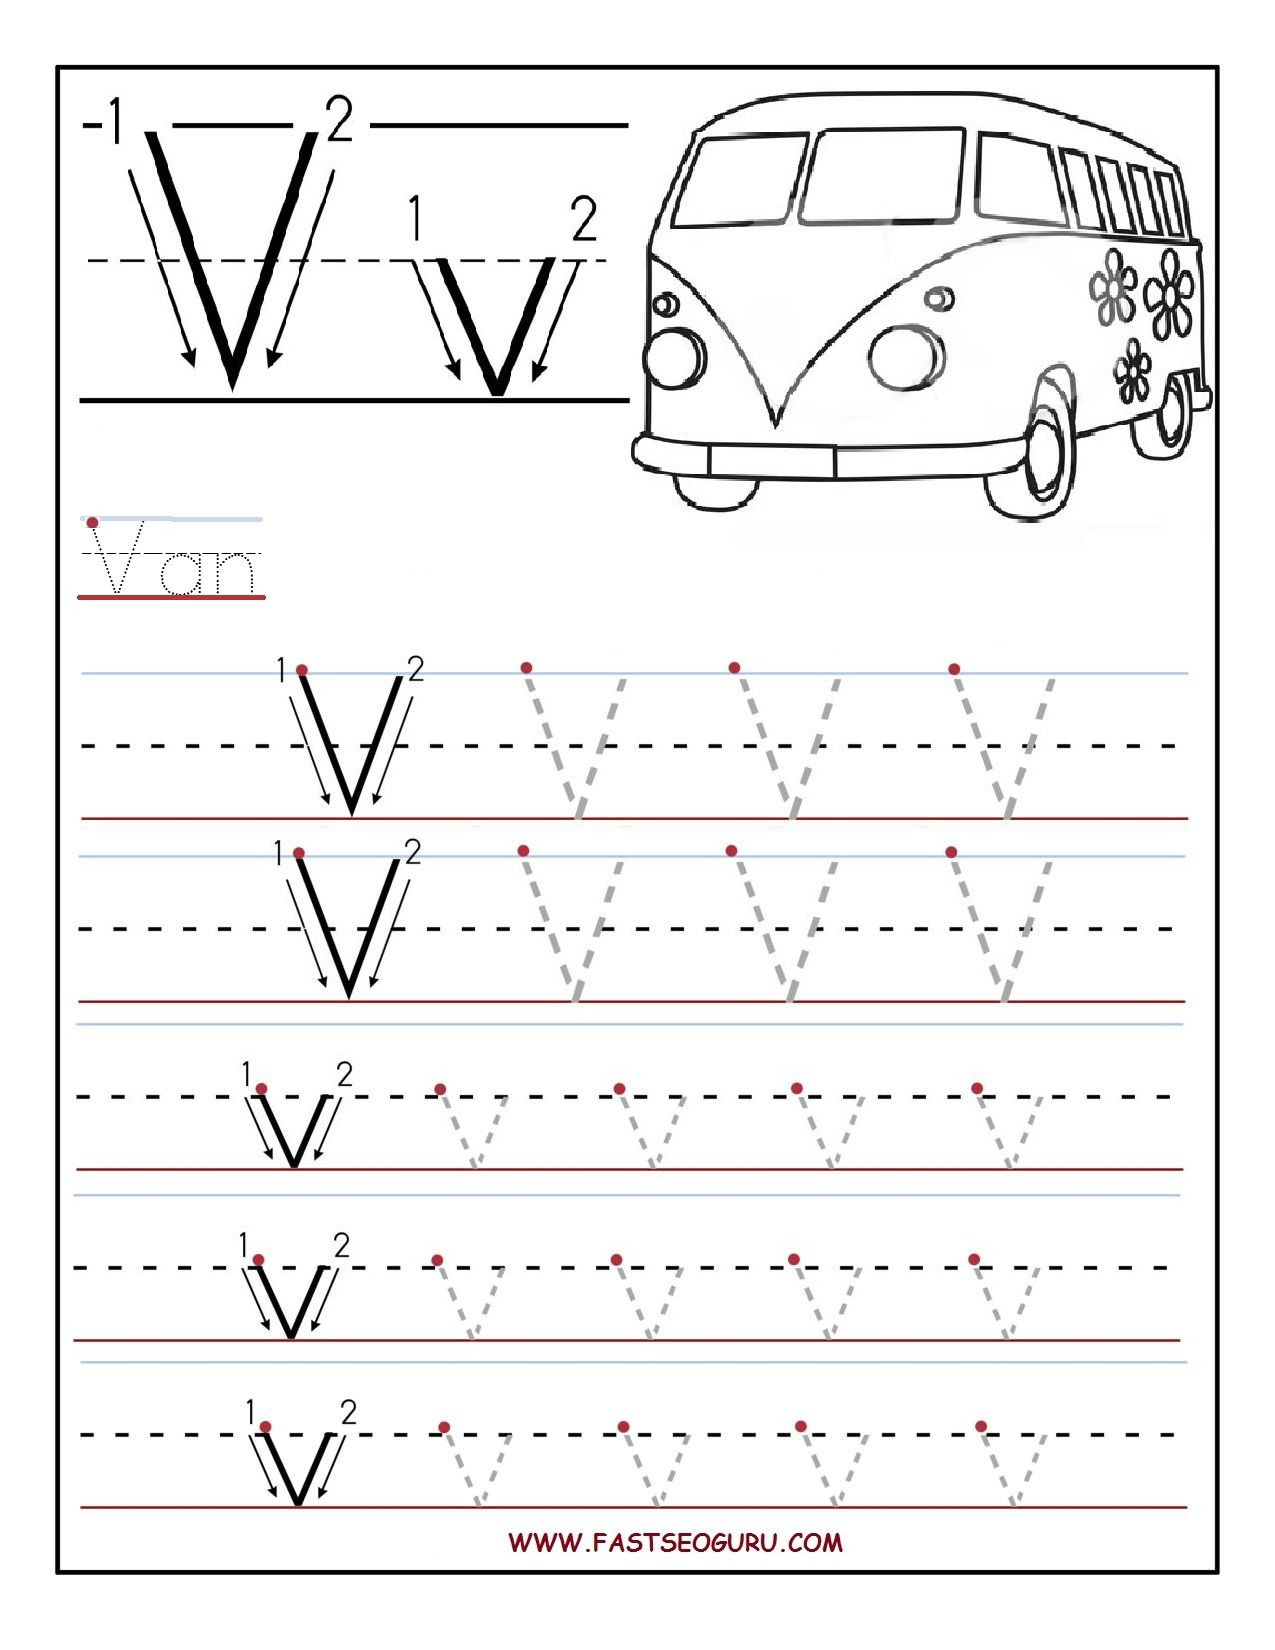 worksheet Pre K Tracing Worksheets printable letter v tracing worksheets for preschool pre k work preschool